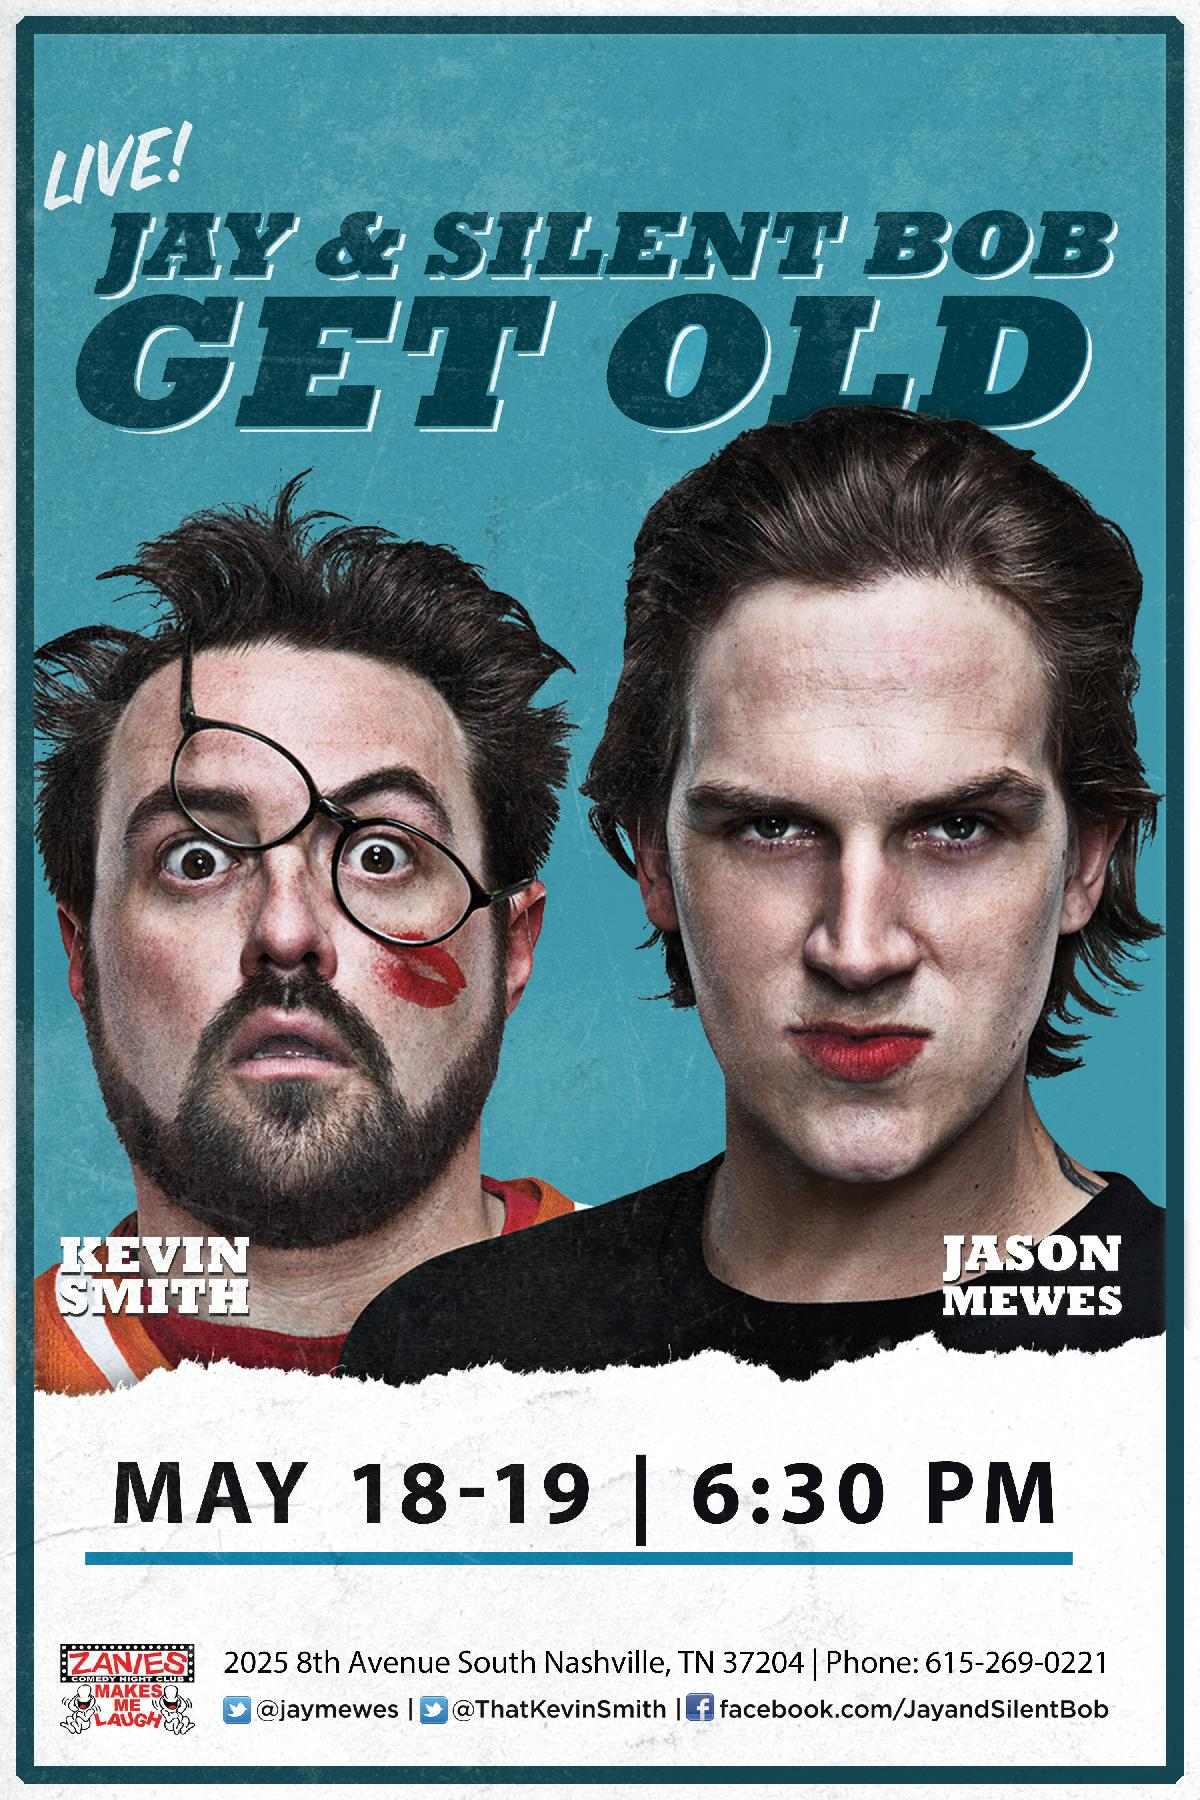 Jay & Silent Bob Get Old May 18i-19 at 6:30pm